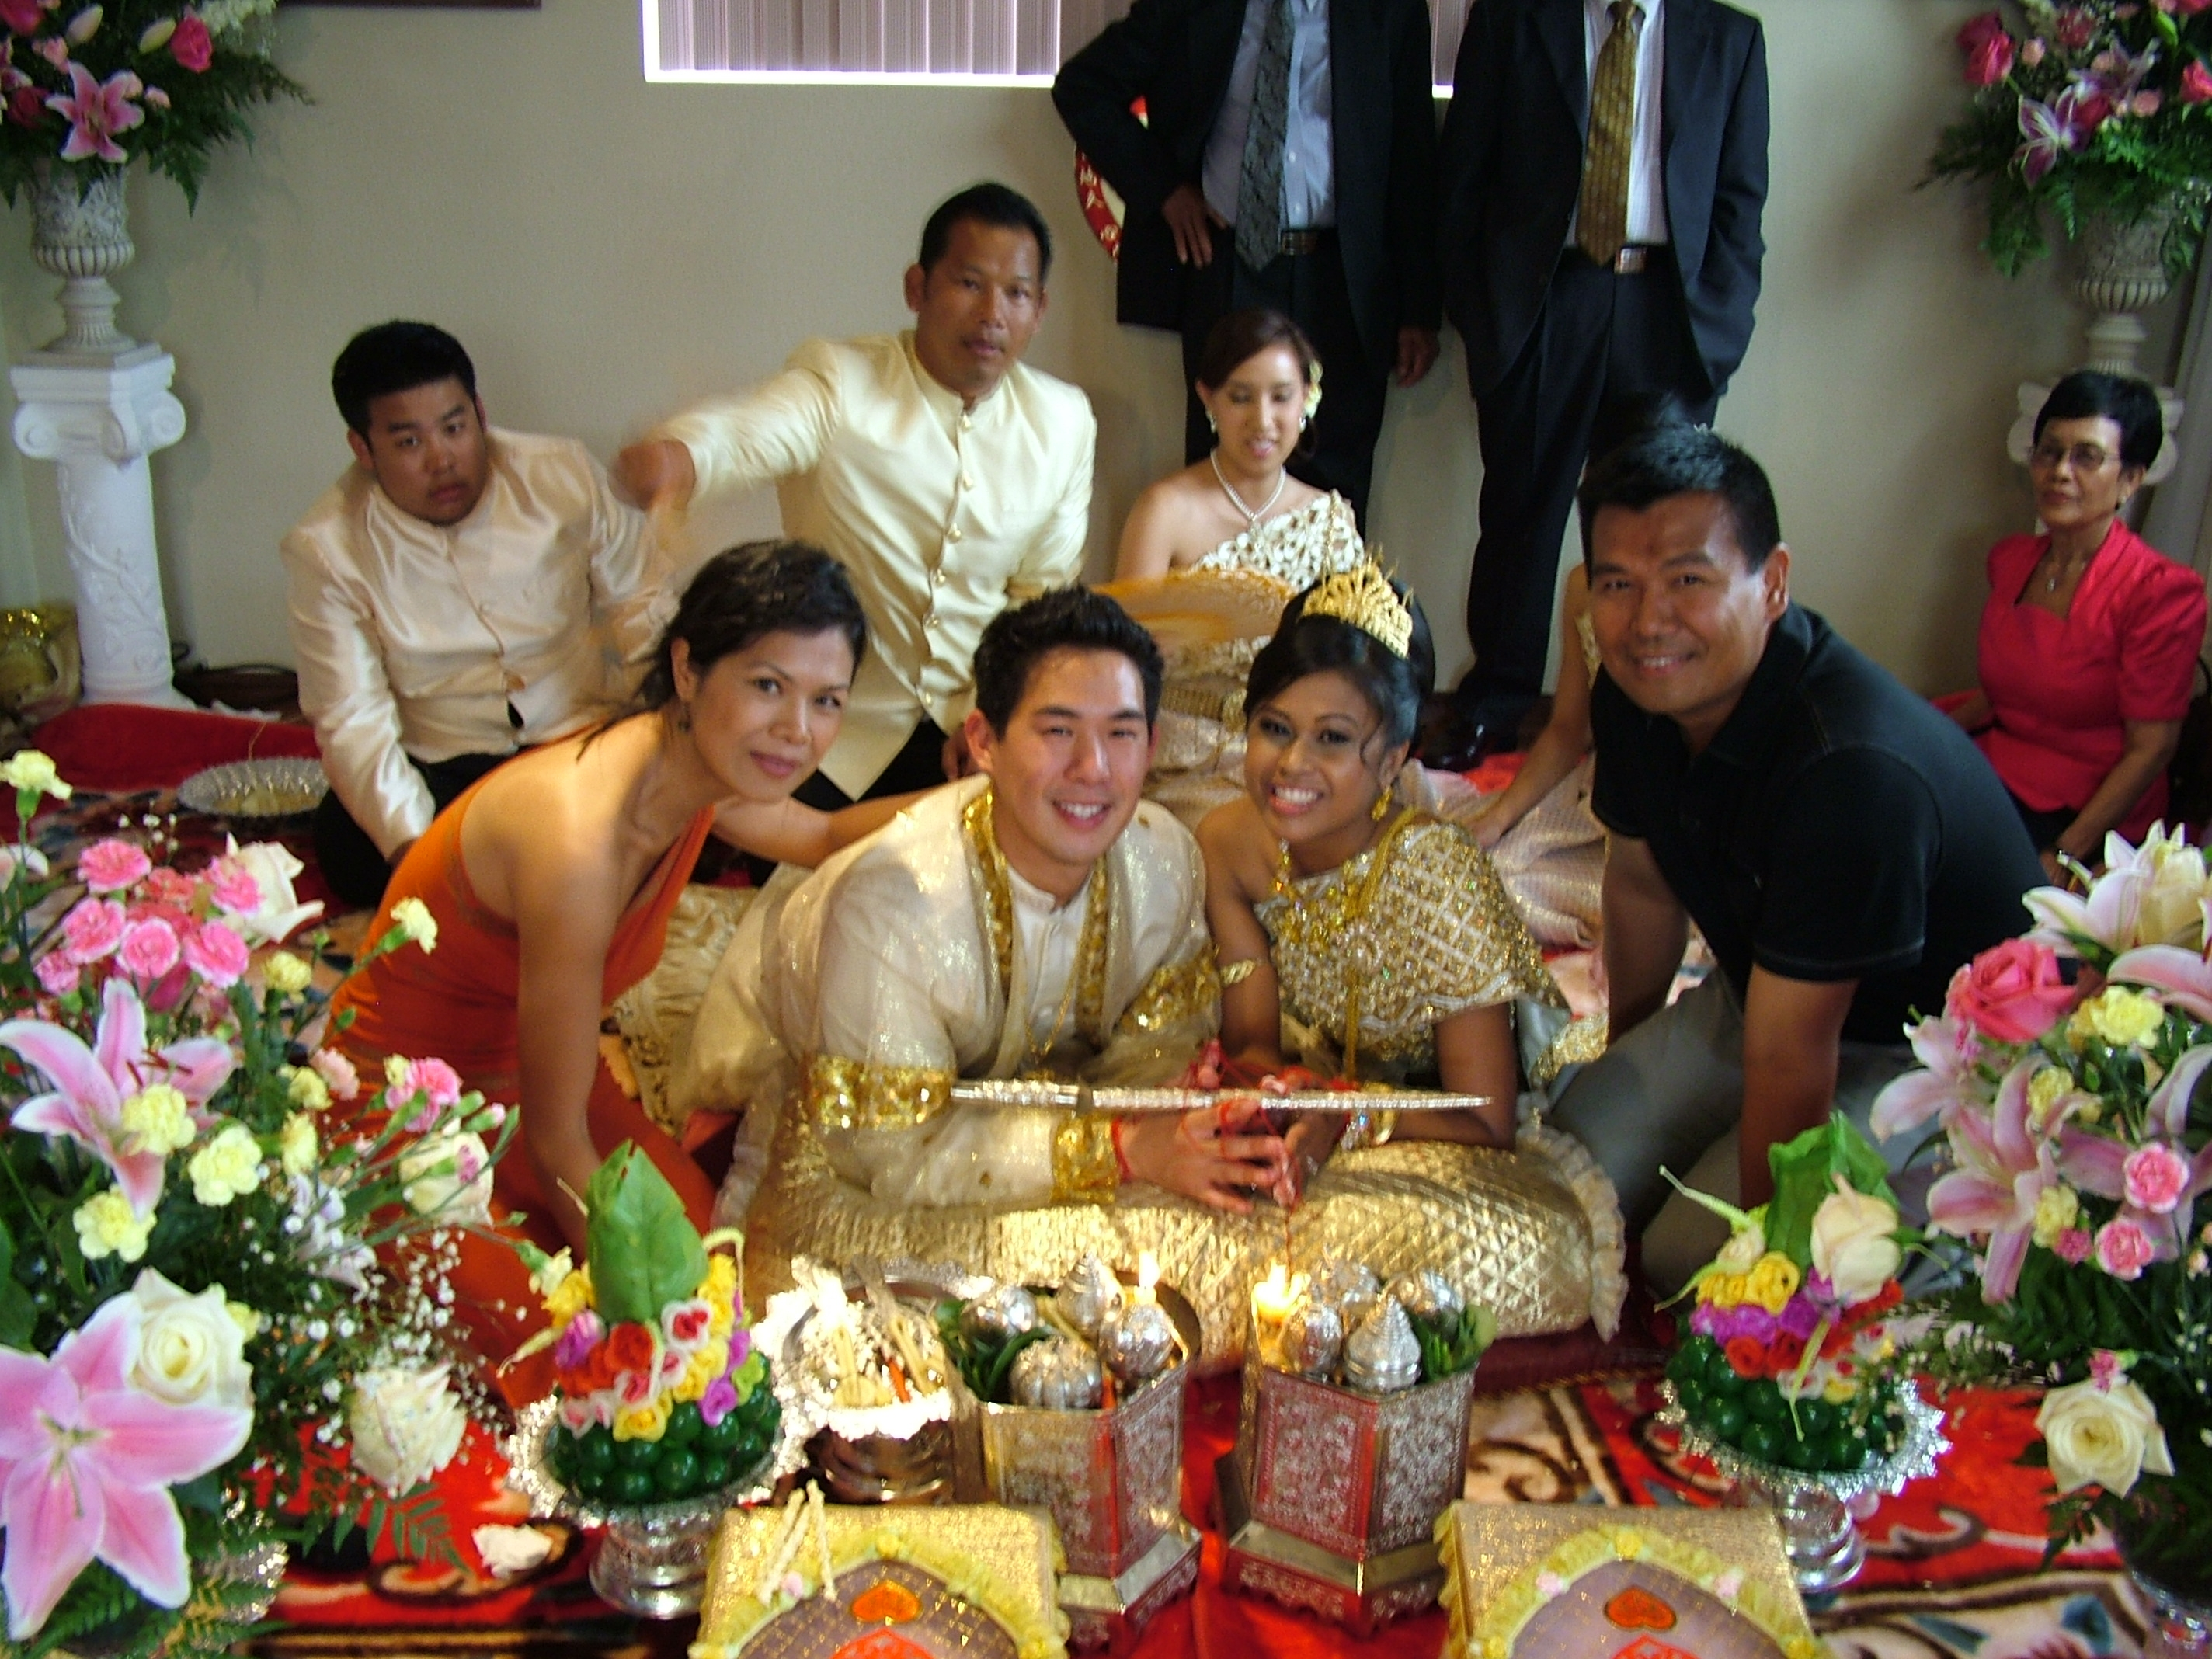 Theary Seng Donald Hok Heidi Carlos Khmer Wedding 2008